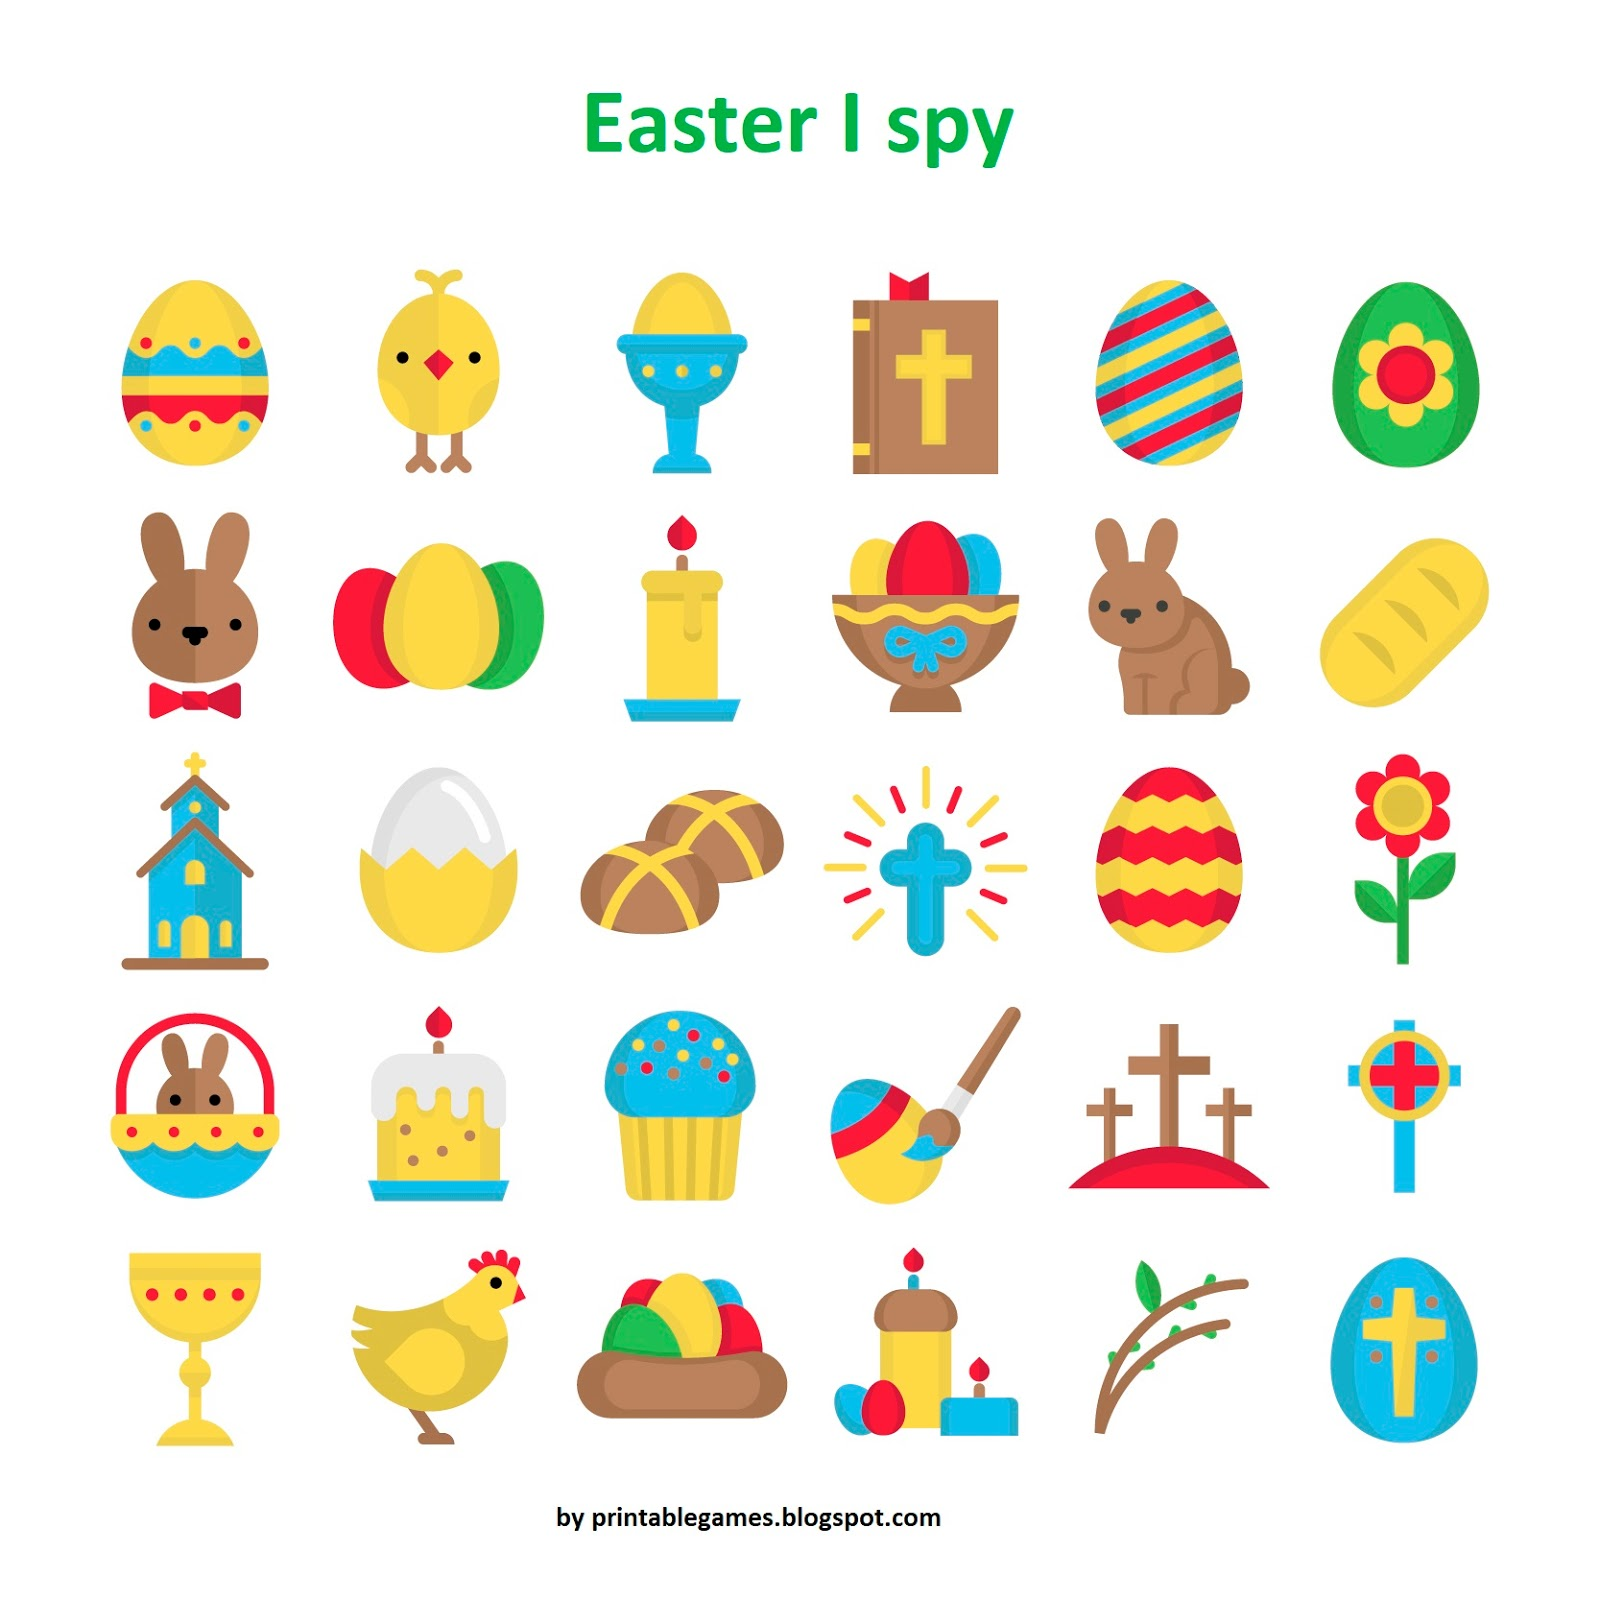 Gry Jezykowe Printable Games Easter I Spy Game